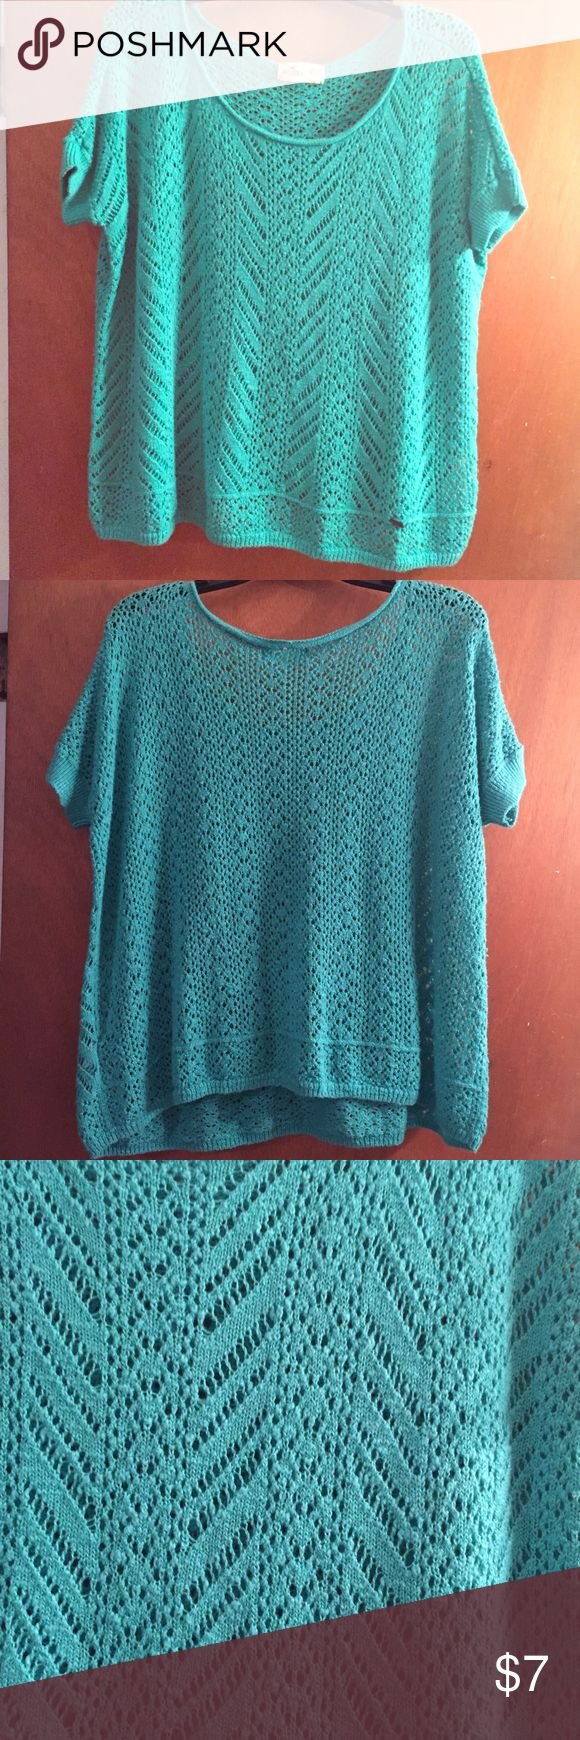 Teal Hollister Top Oversize, more green than in the picture, boxy shape, great with leggings! Hollister Tops